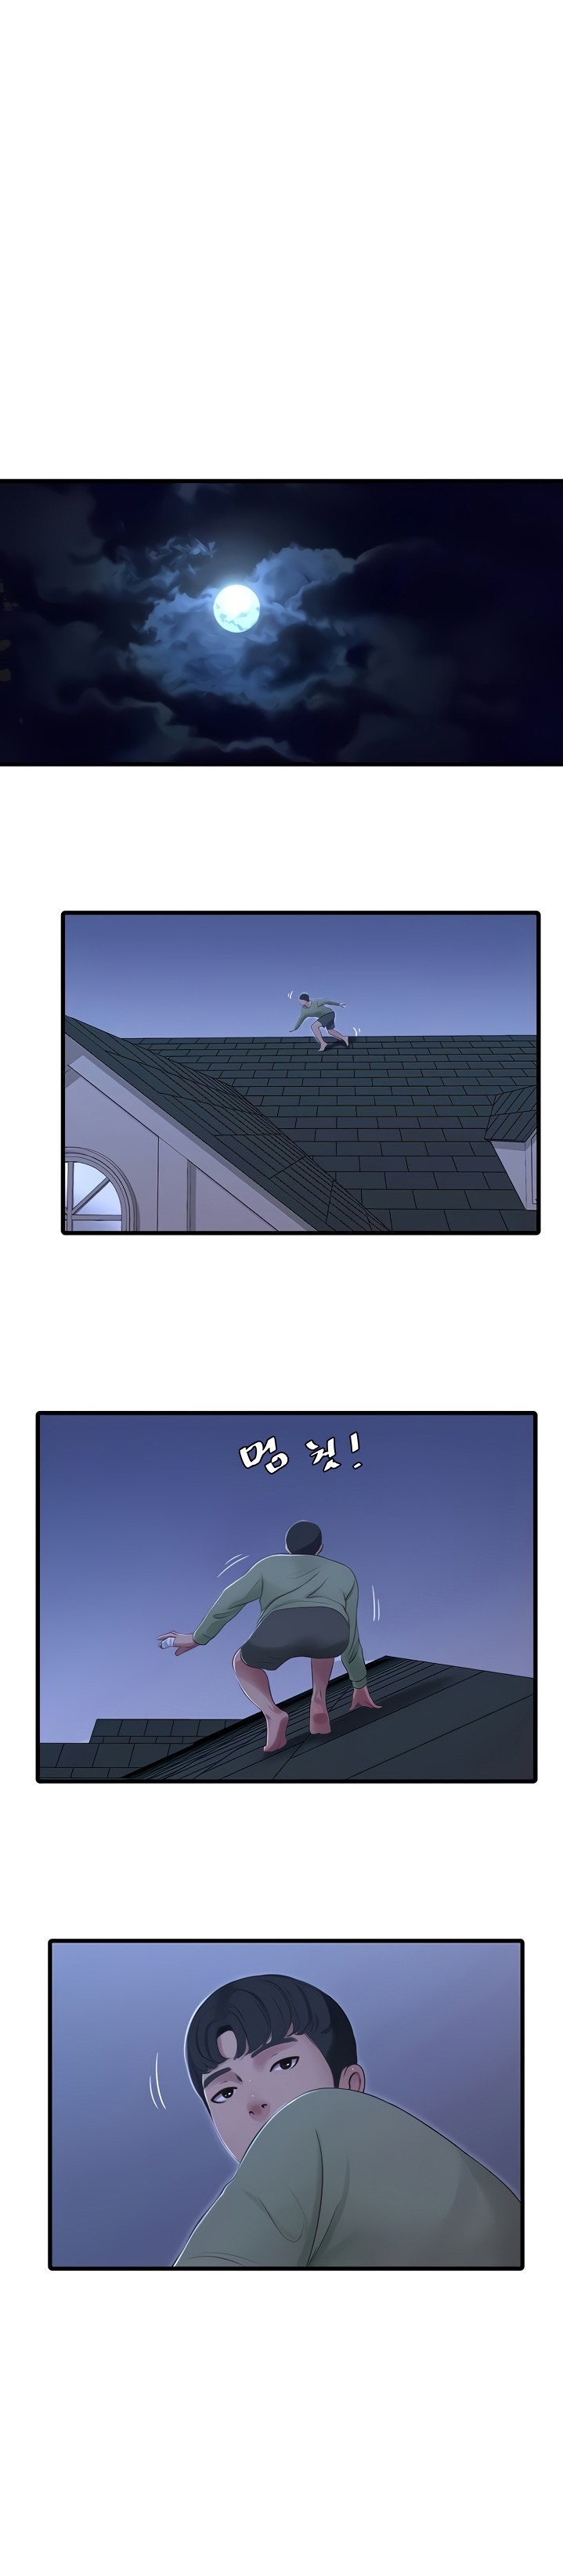 One's In-Laws Virgins - Chapter 75 Page 5